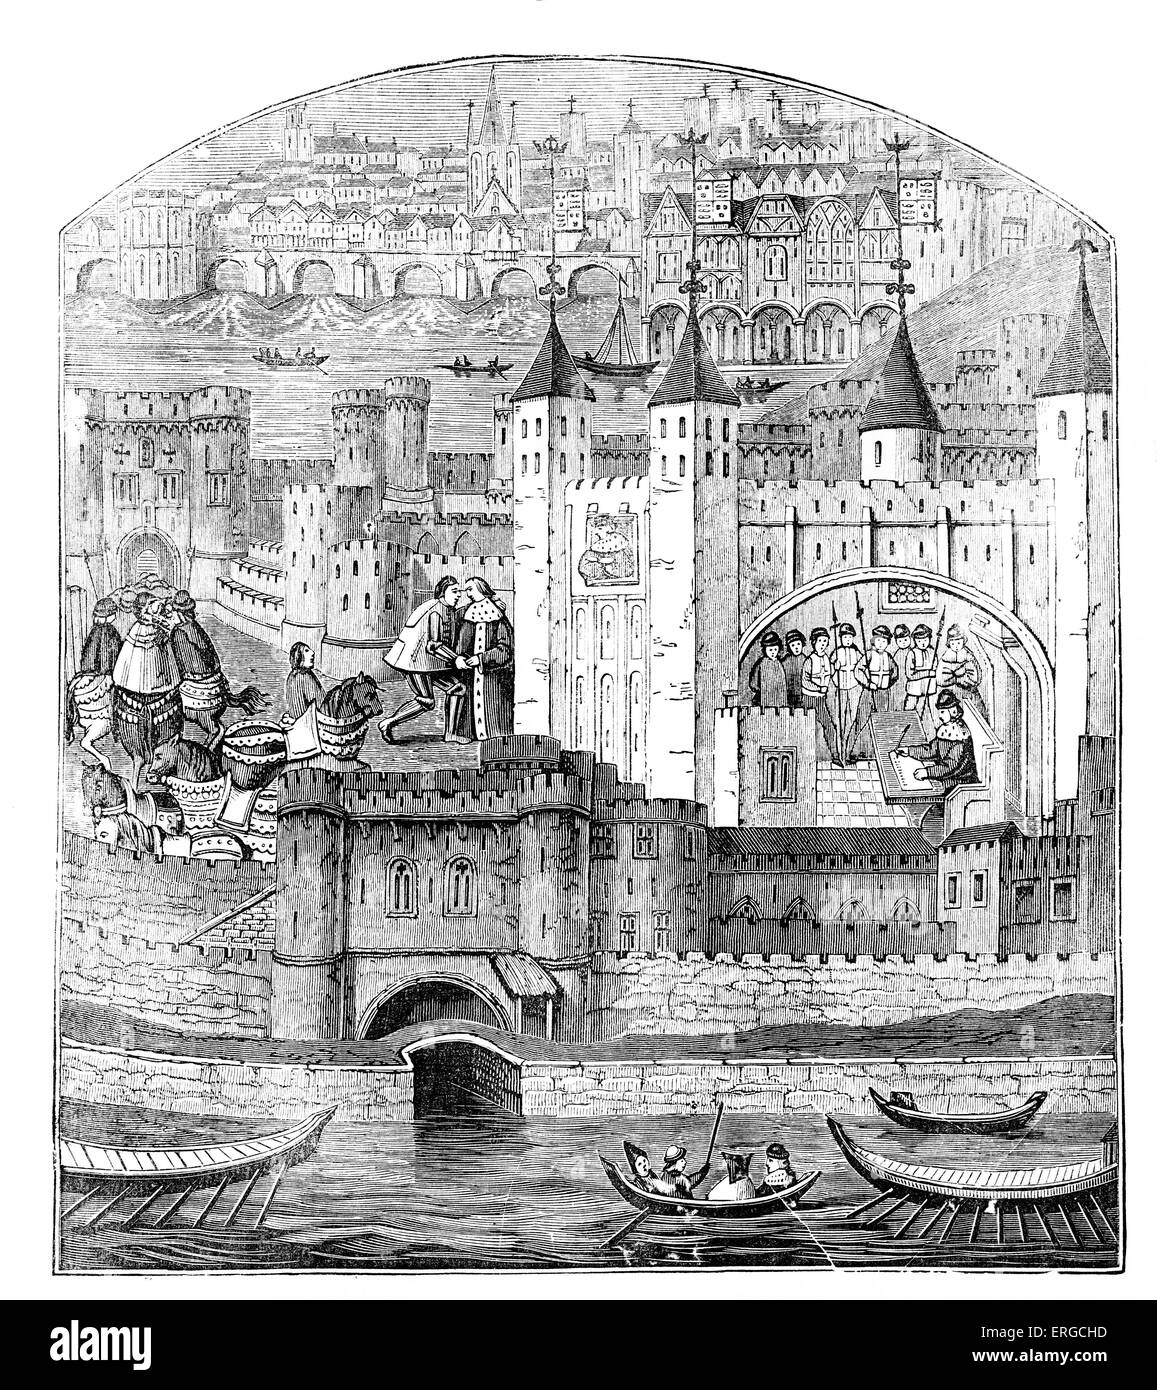 Tower of London in the 15th century. - Stock Image